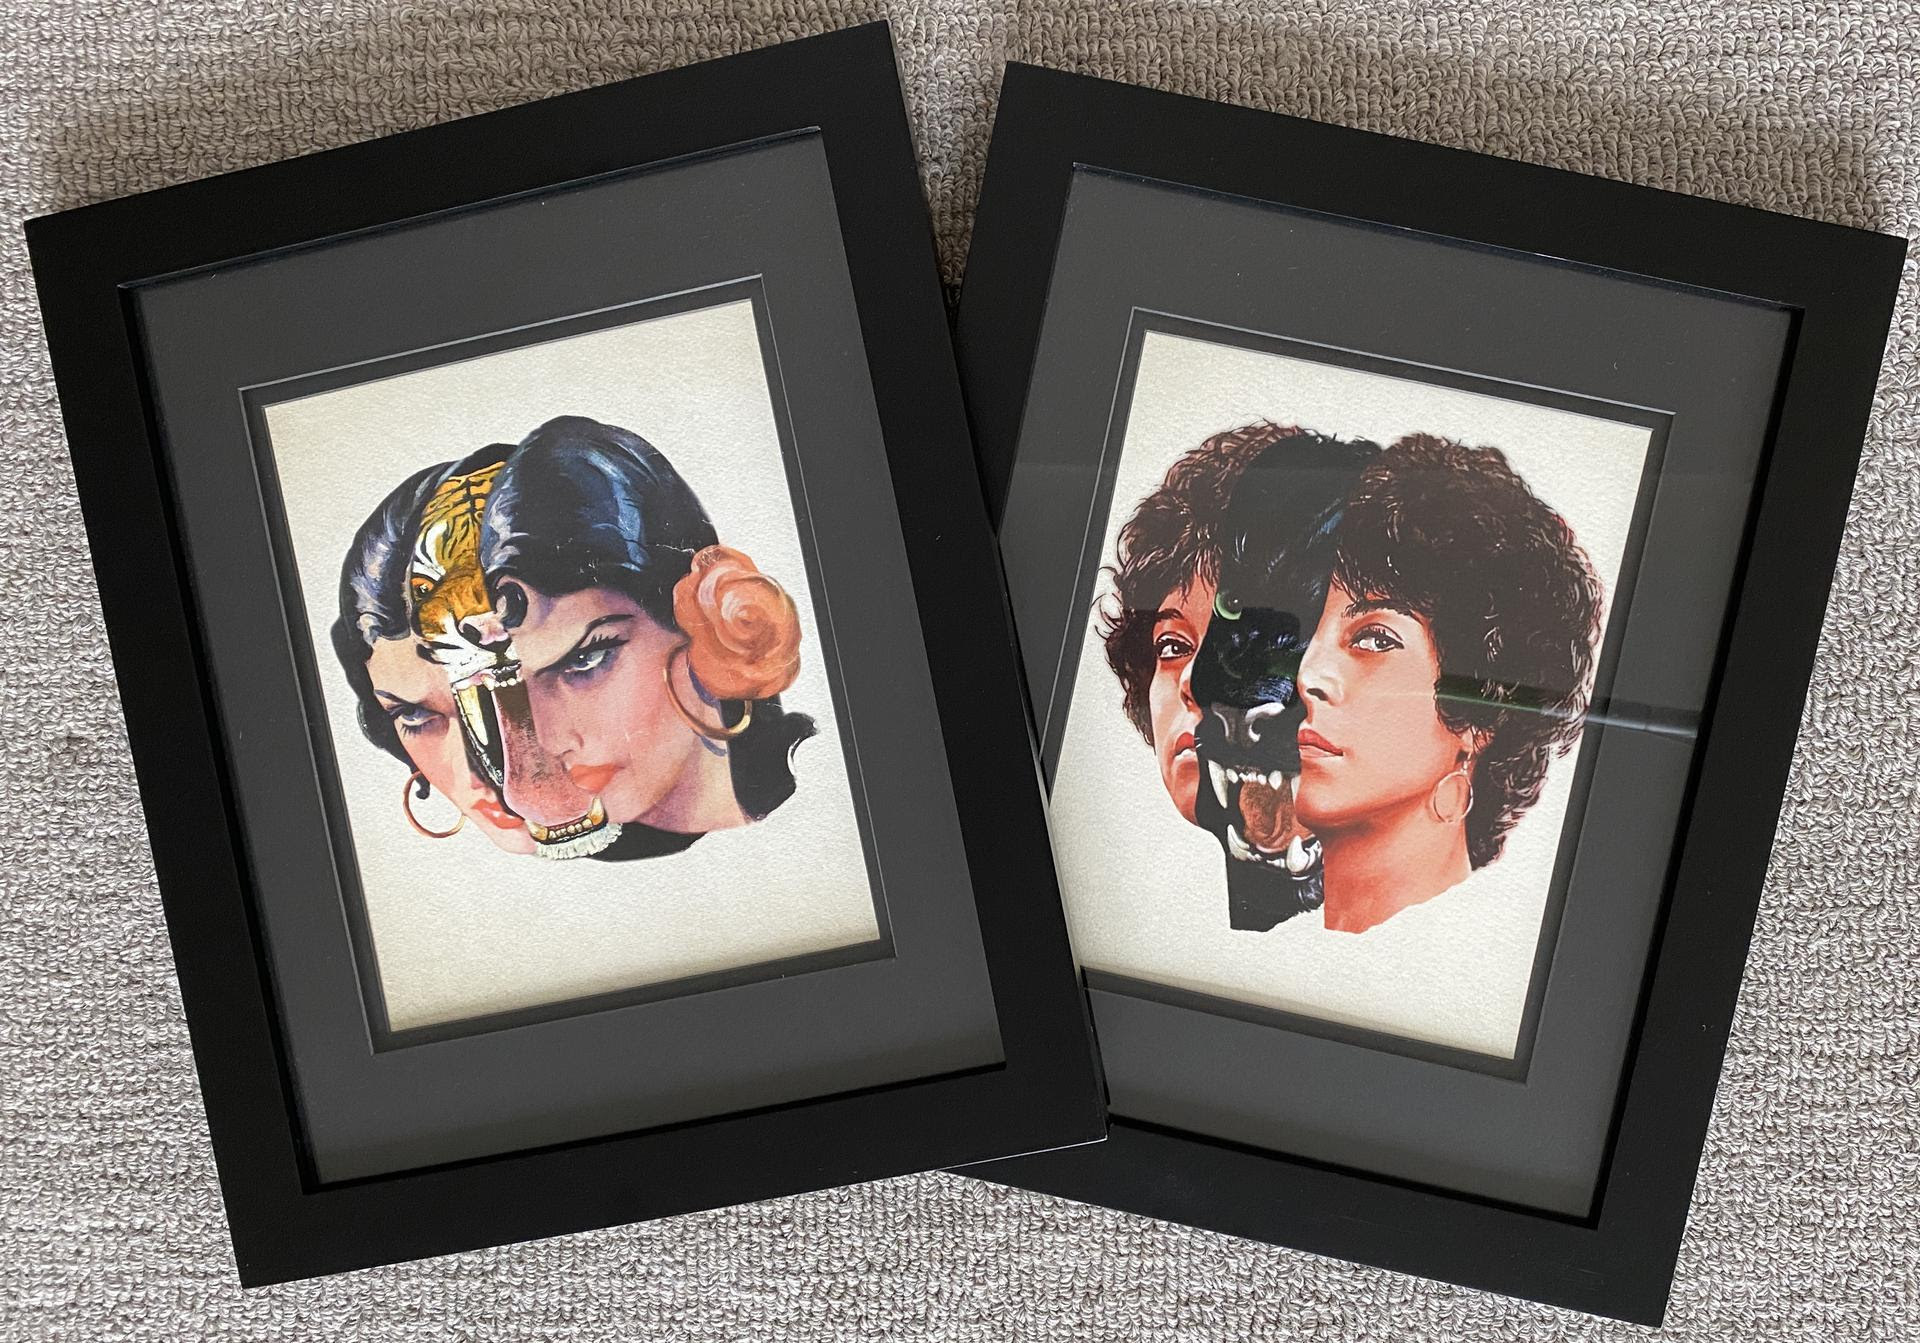 framed collage prints of a woman's head divided by a tiger's and a woman's head divided by a puma's